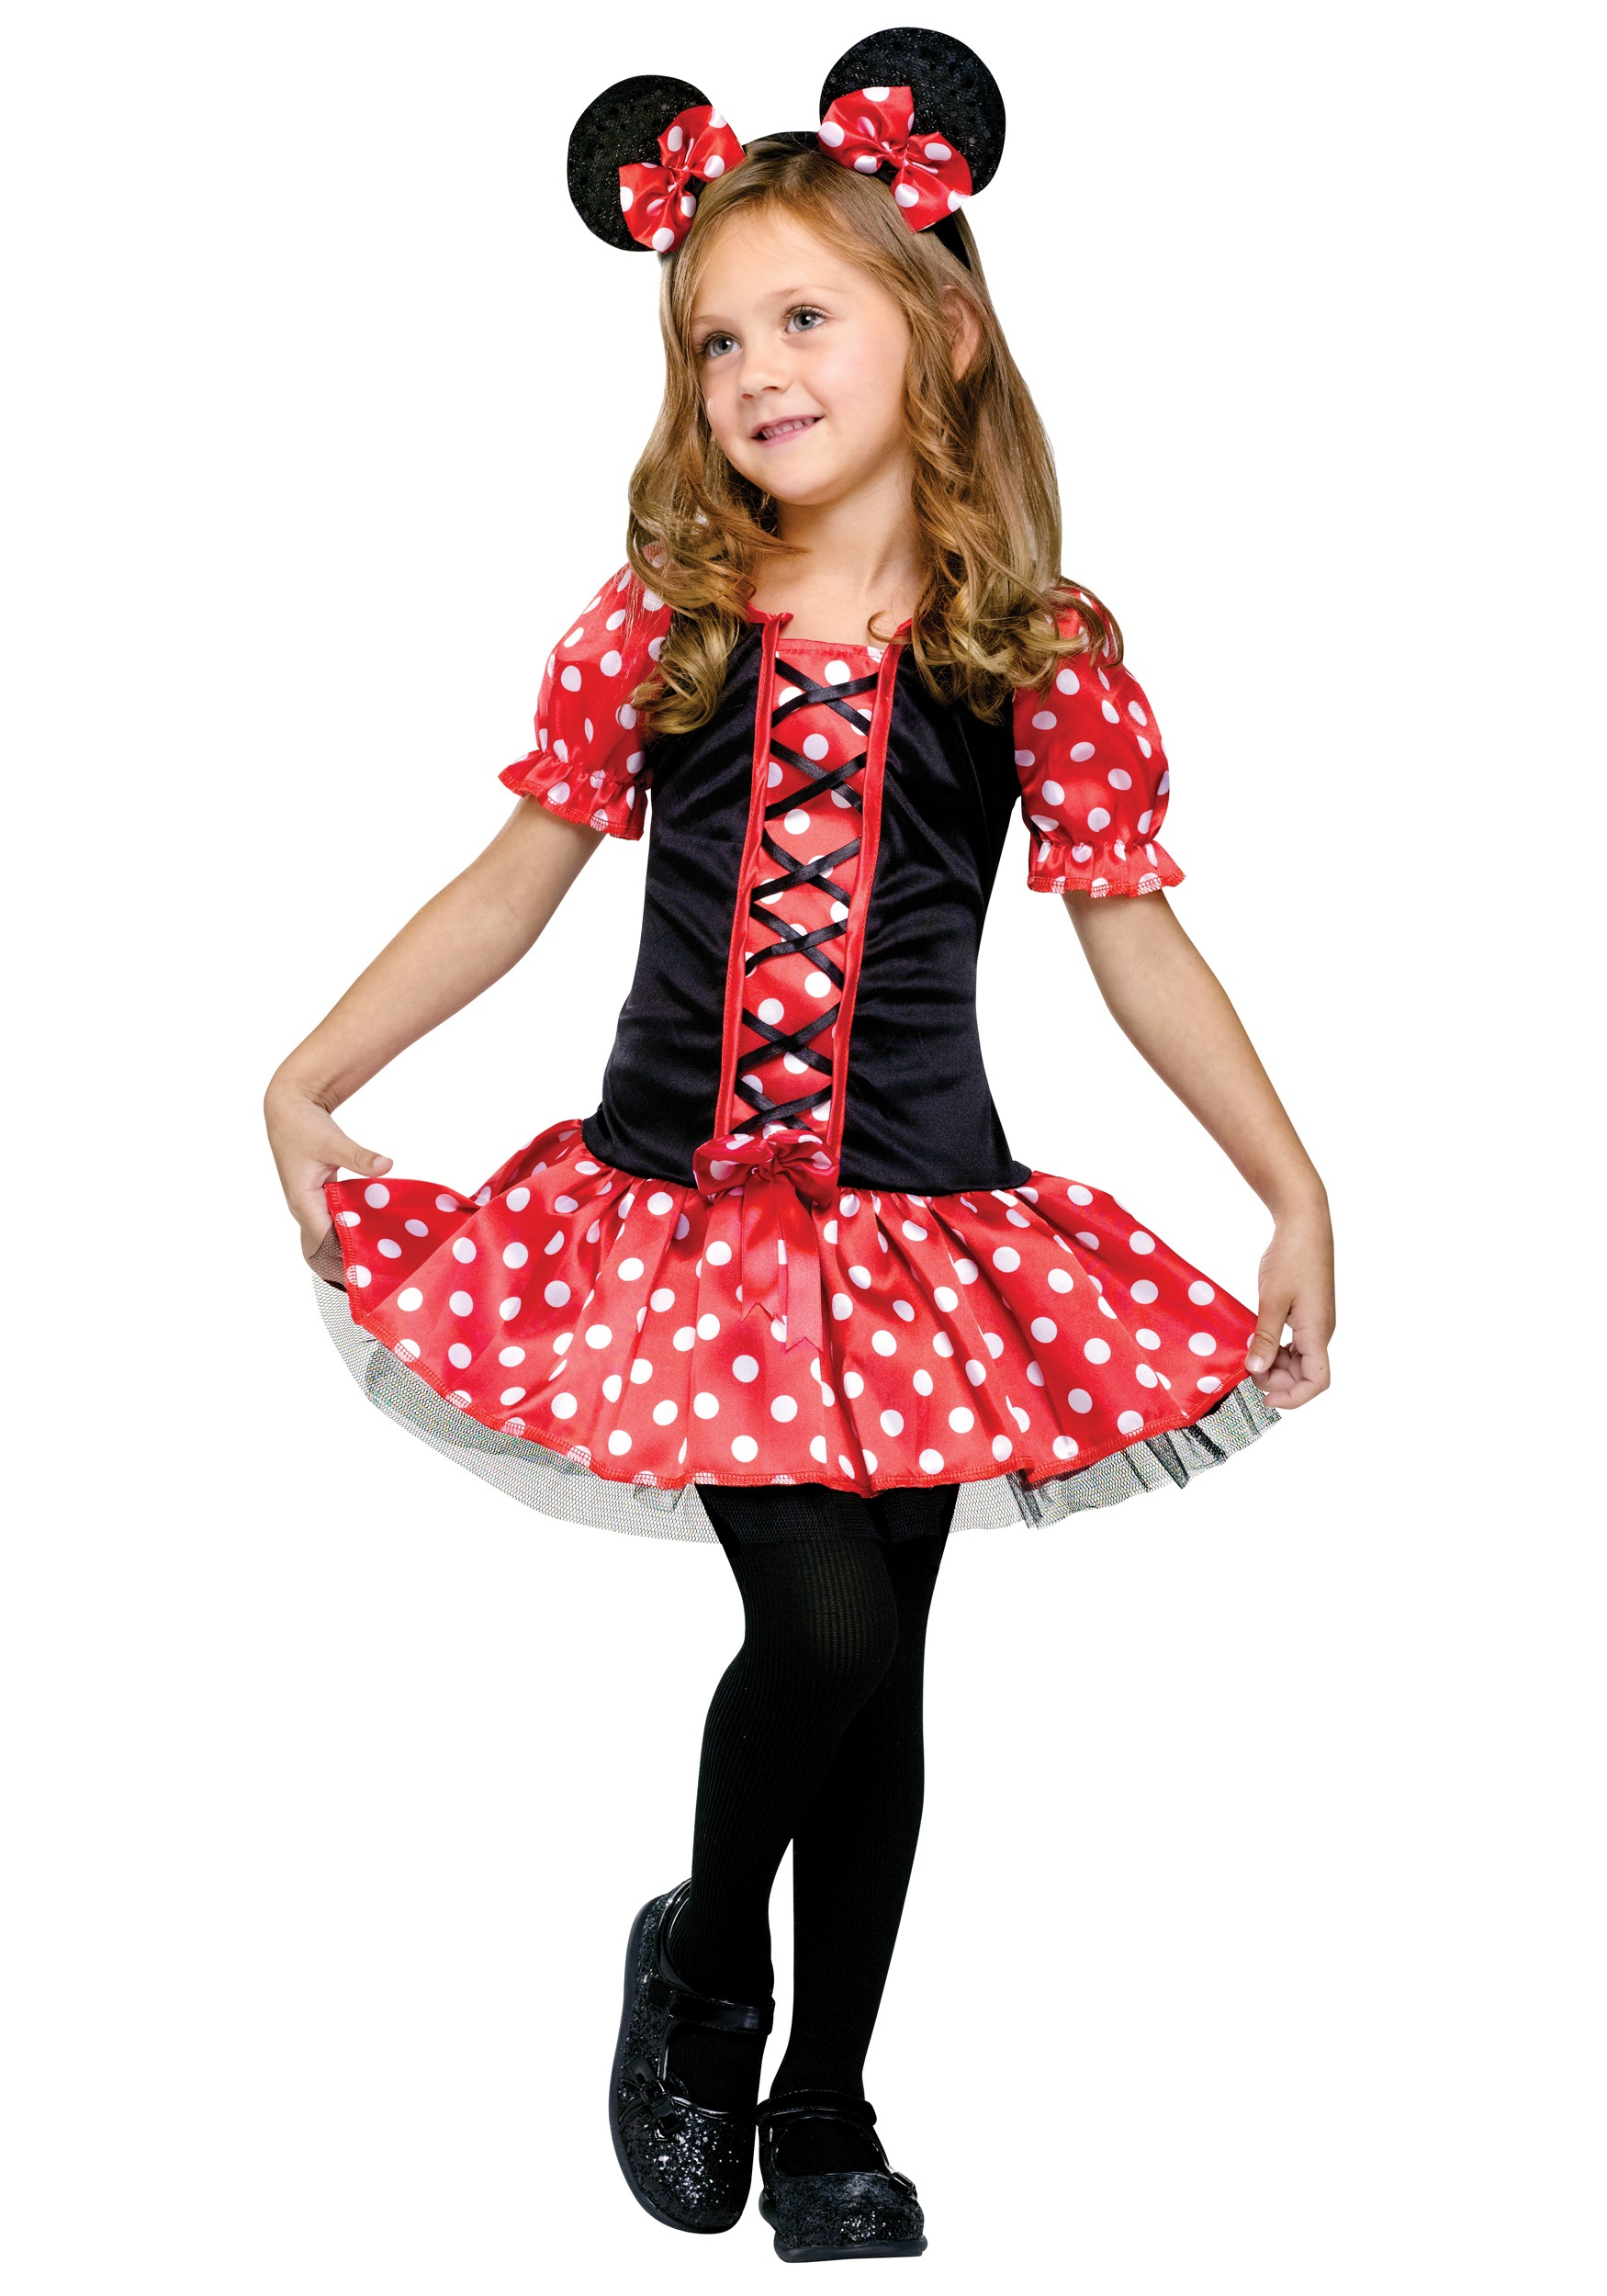 Halloween Scary Costumes For Kids